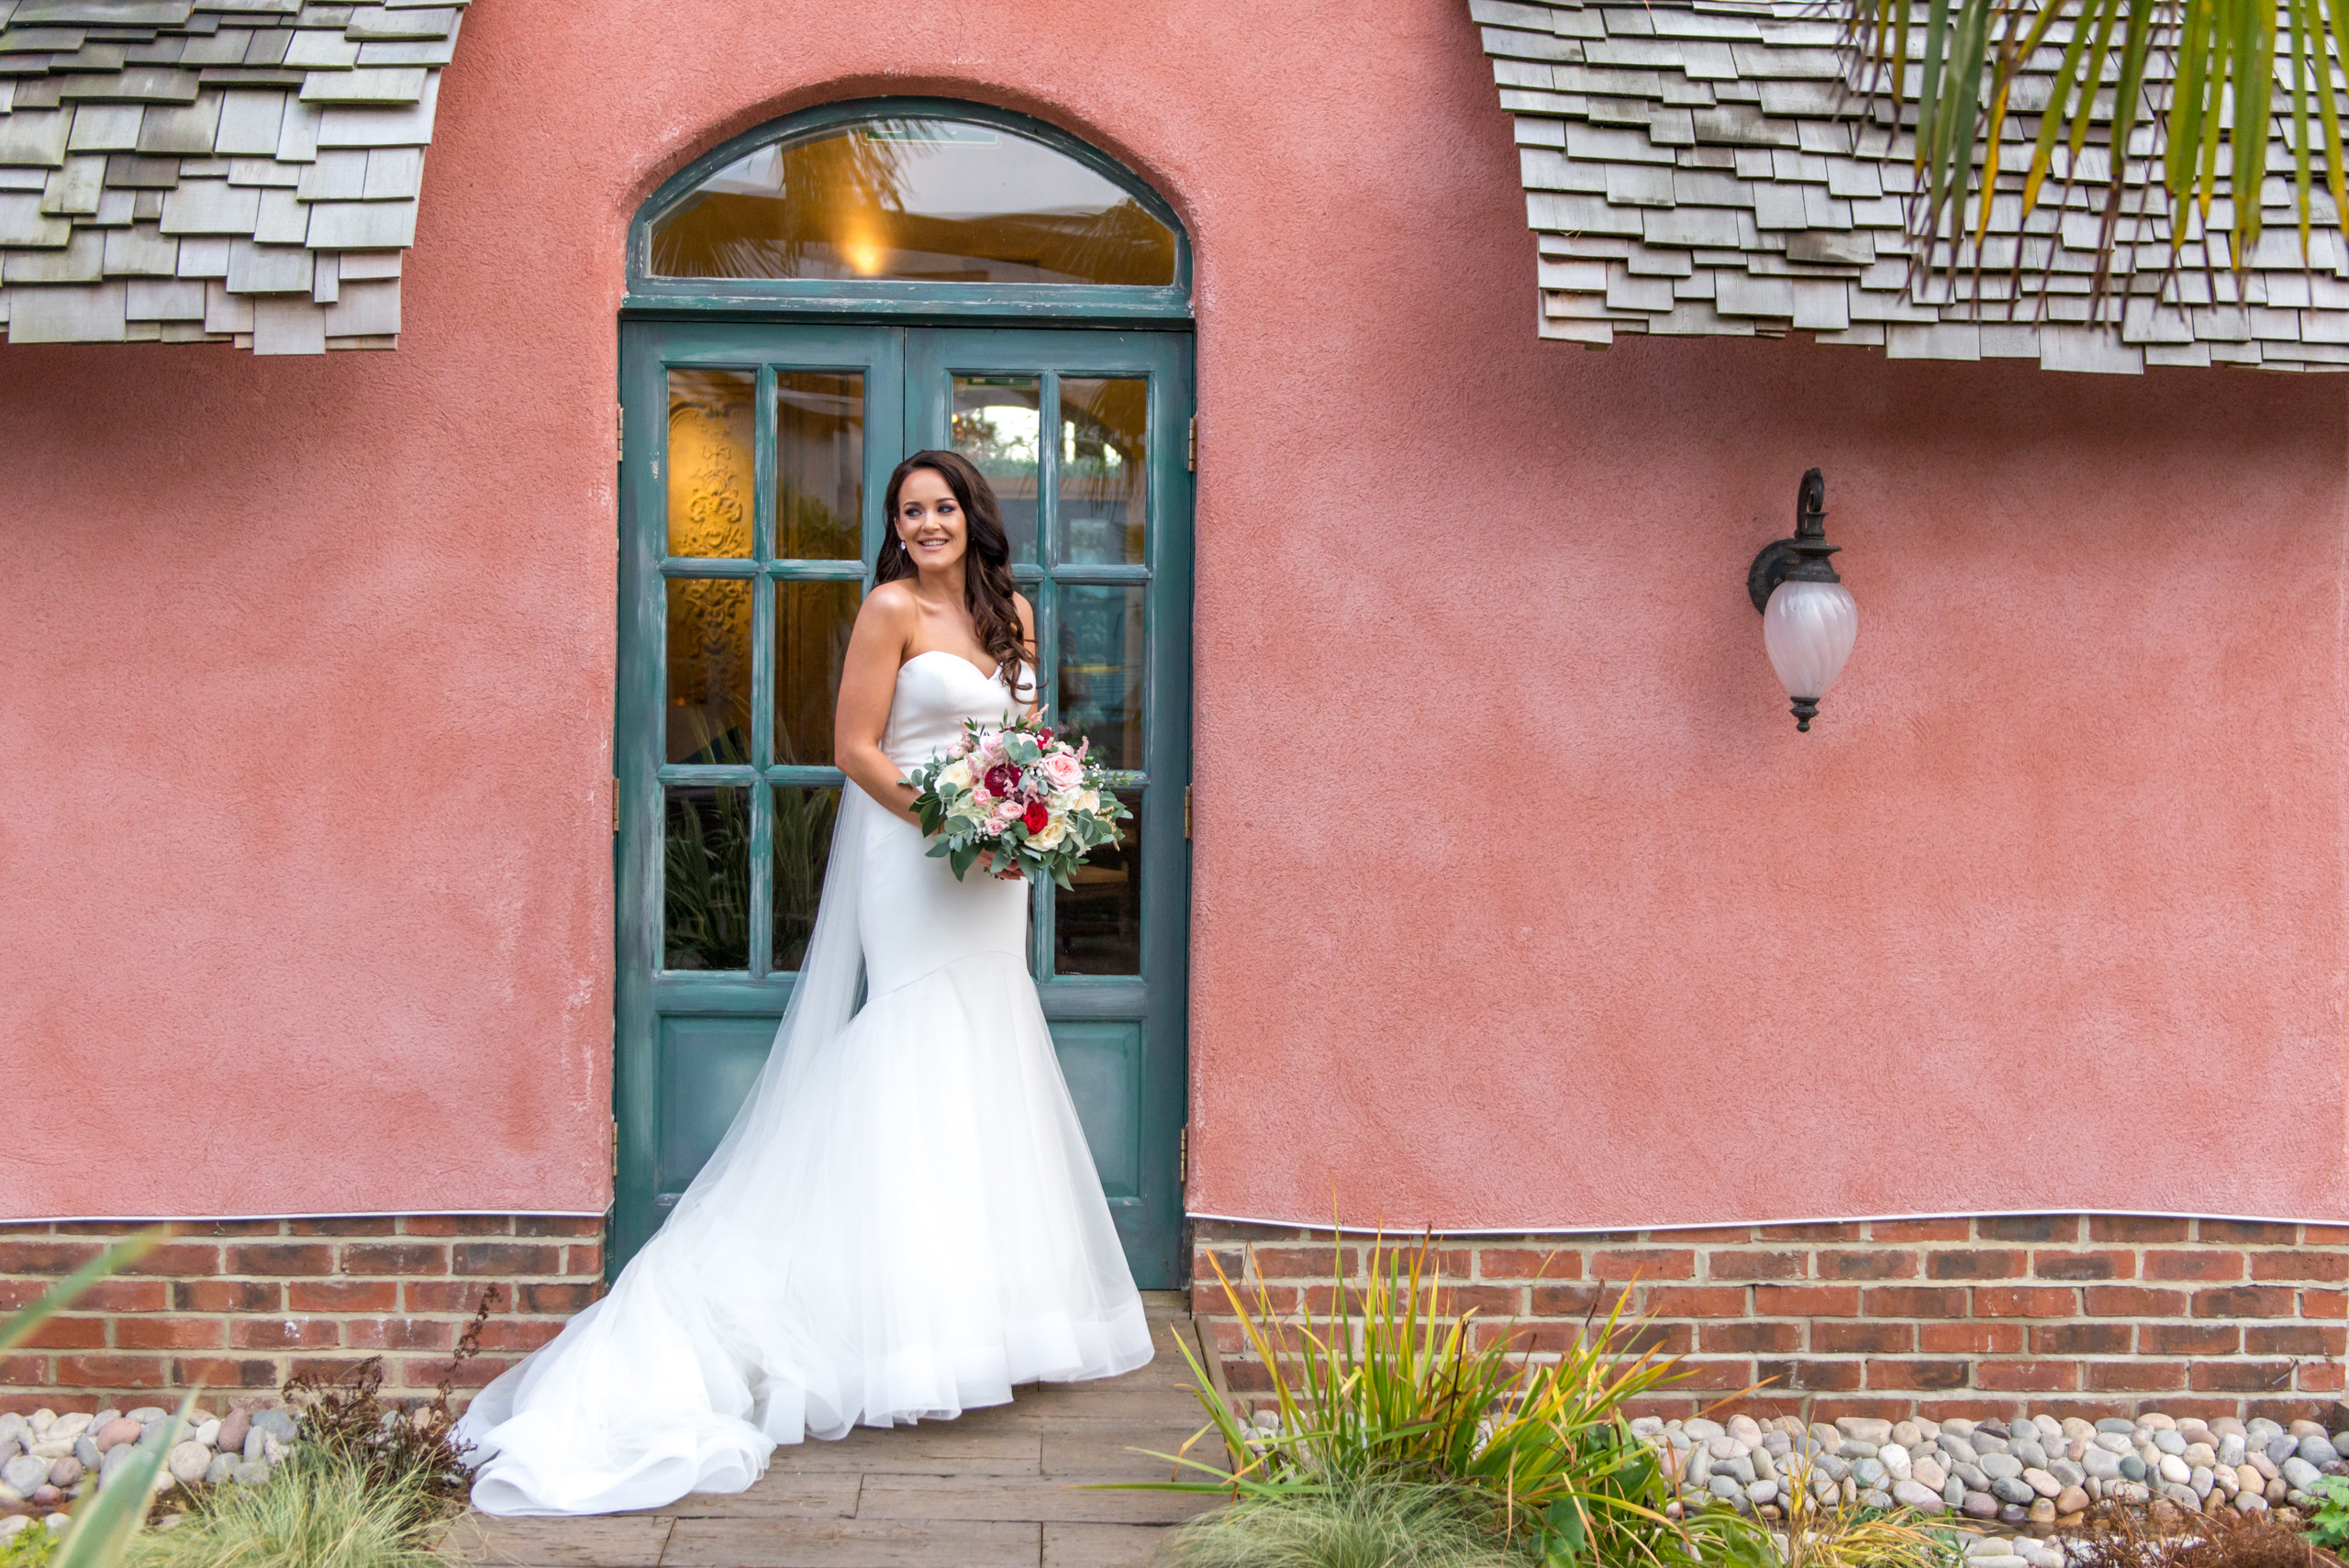 Relaxed photograph of bride smiling on wedding day at Le Petit Chateau in Otterburn, Northumberland, by Bride and Groom Wedding Photography